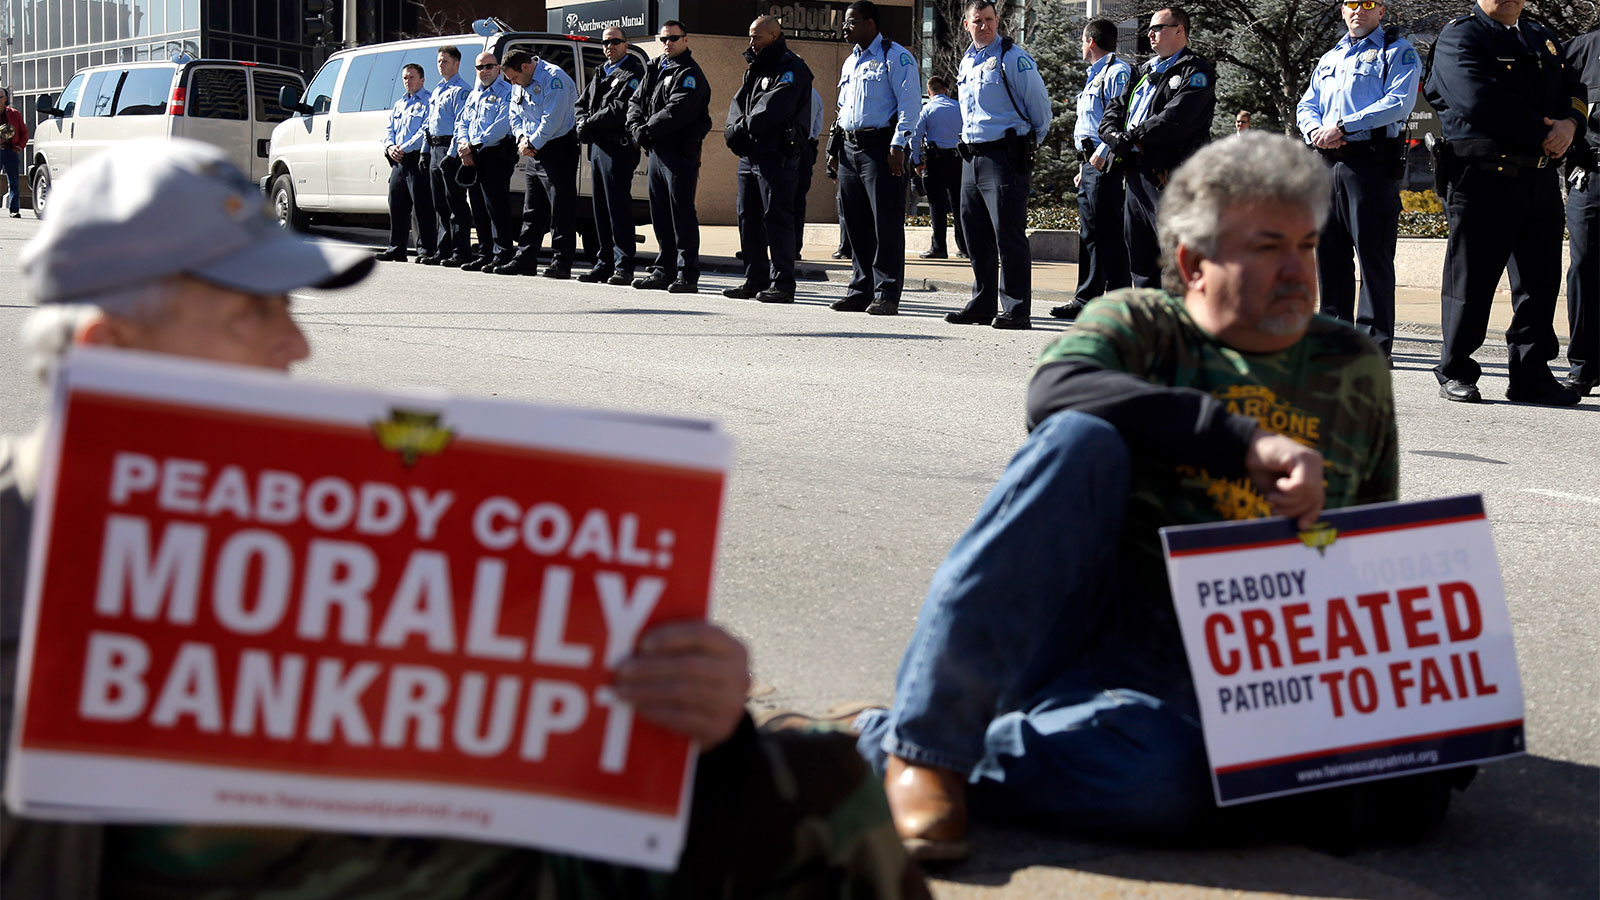 Two men holding signs protesting Peabody Energy with police in the background